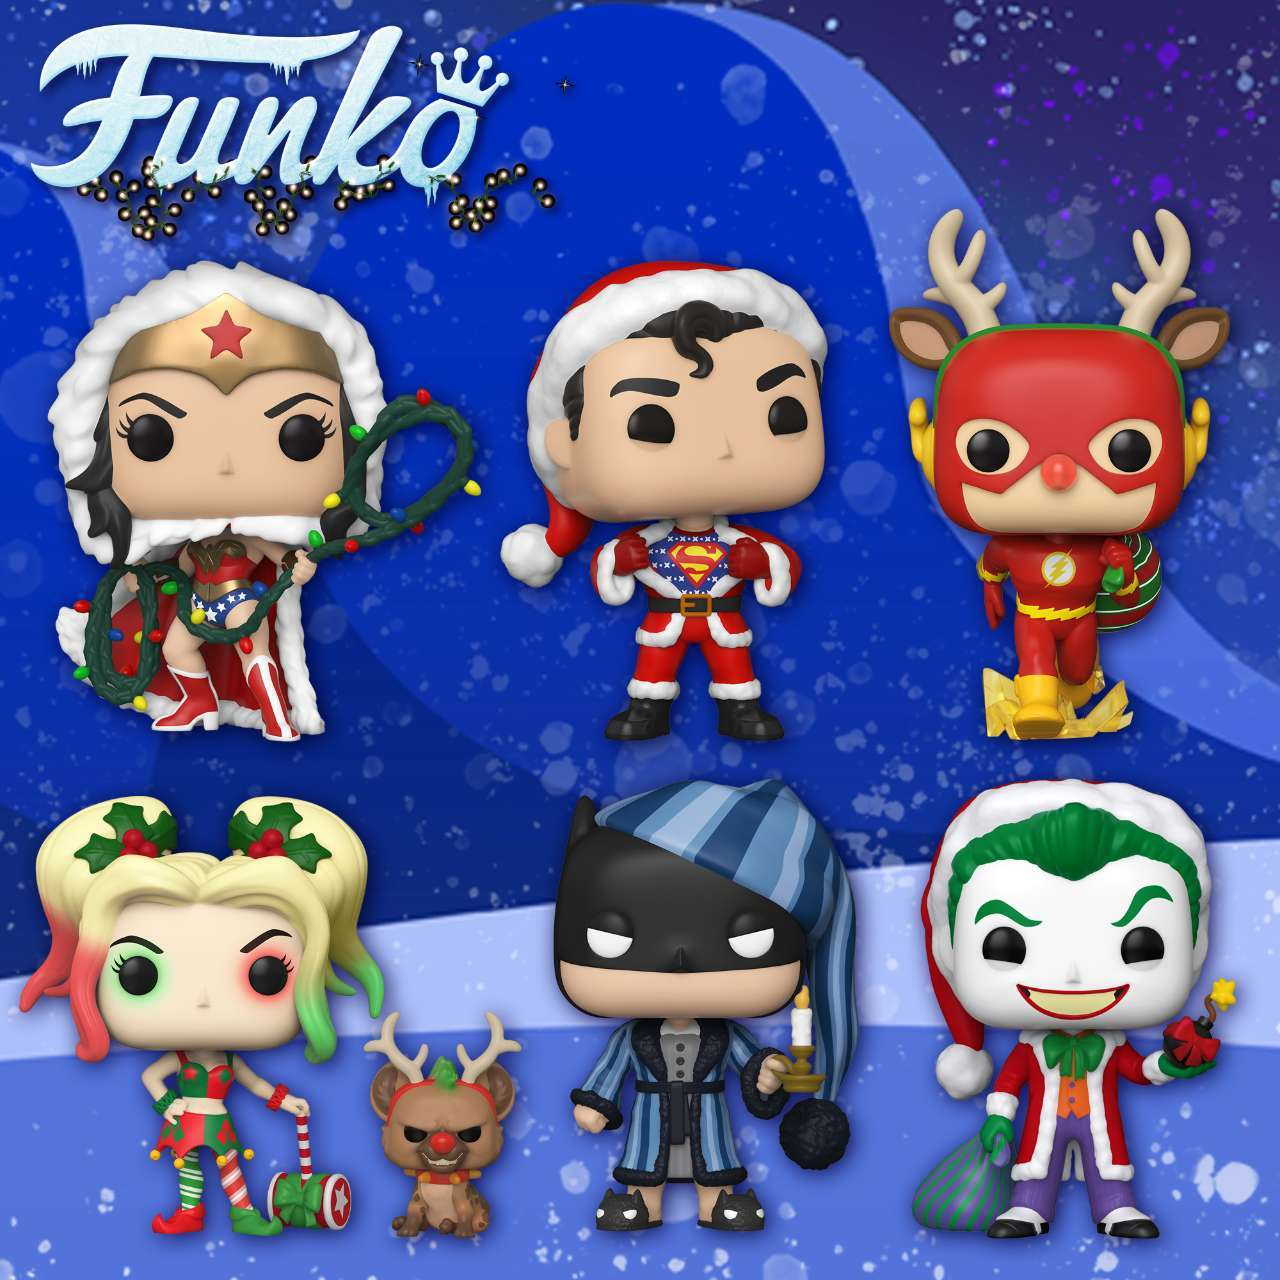 Christmas Funko Pop 2020 Funko Launches a Massive DC Comics Christmas in July Pop Figure Wave